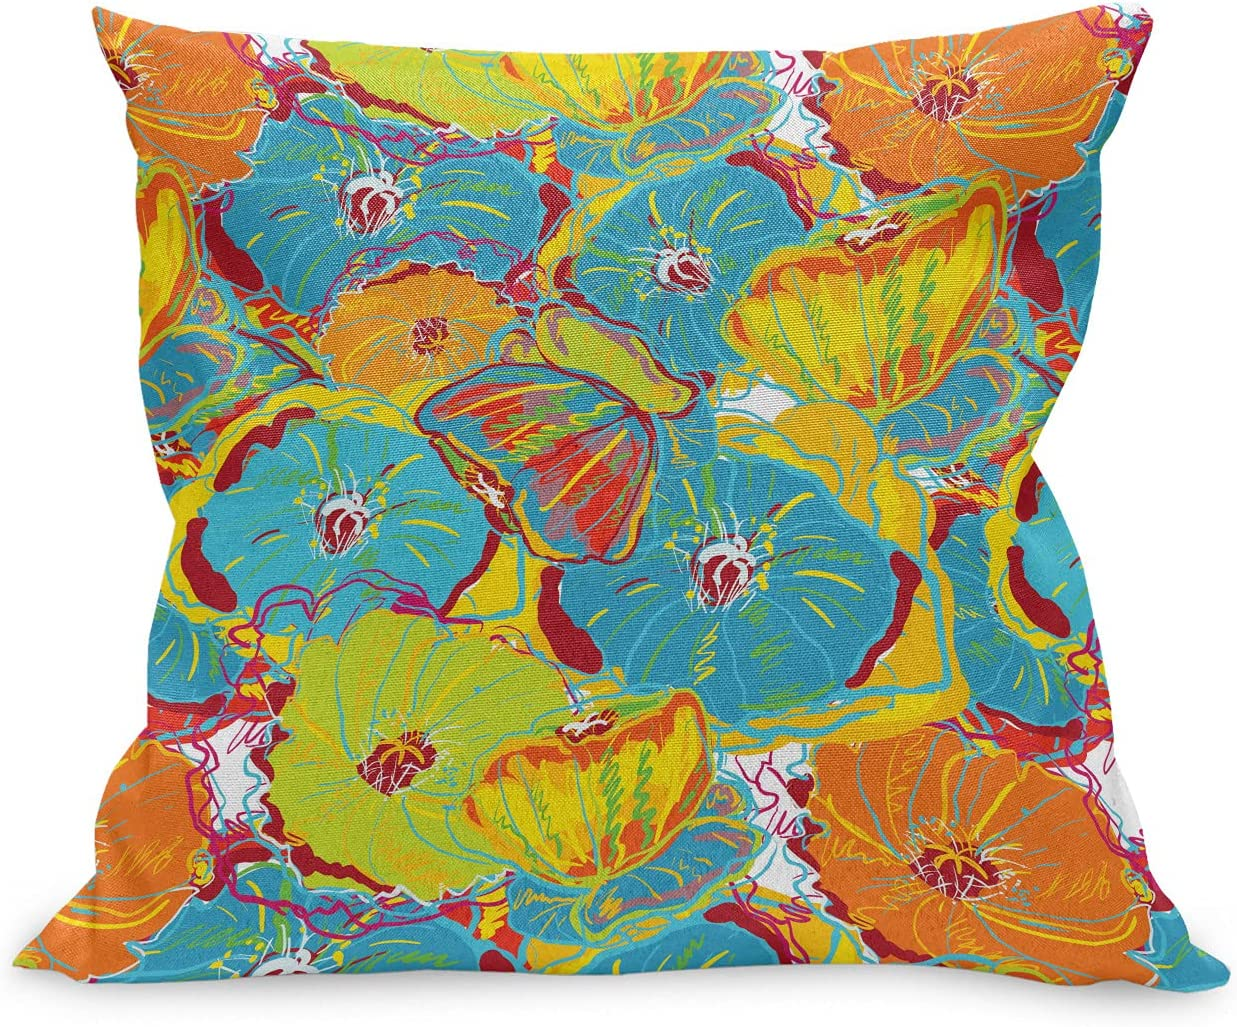 Ambesonne Poppy Flower Throw Pillow Bombing free shipping Cushion Colorfuls Blos Detroit Mall Case